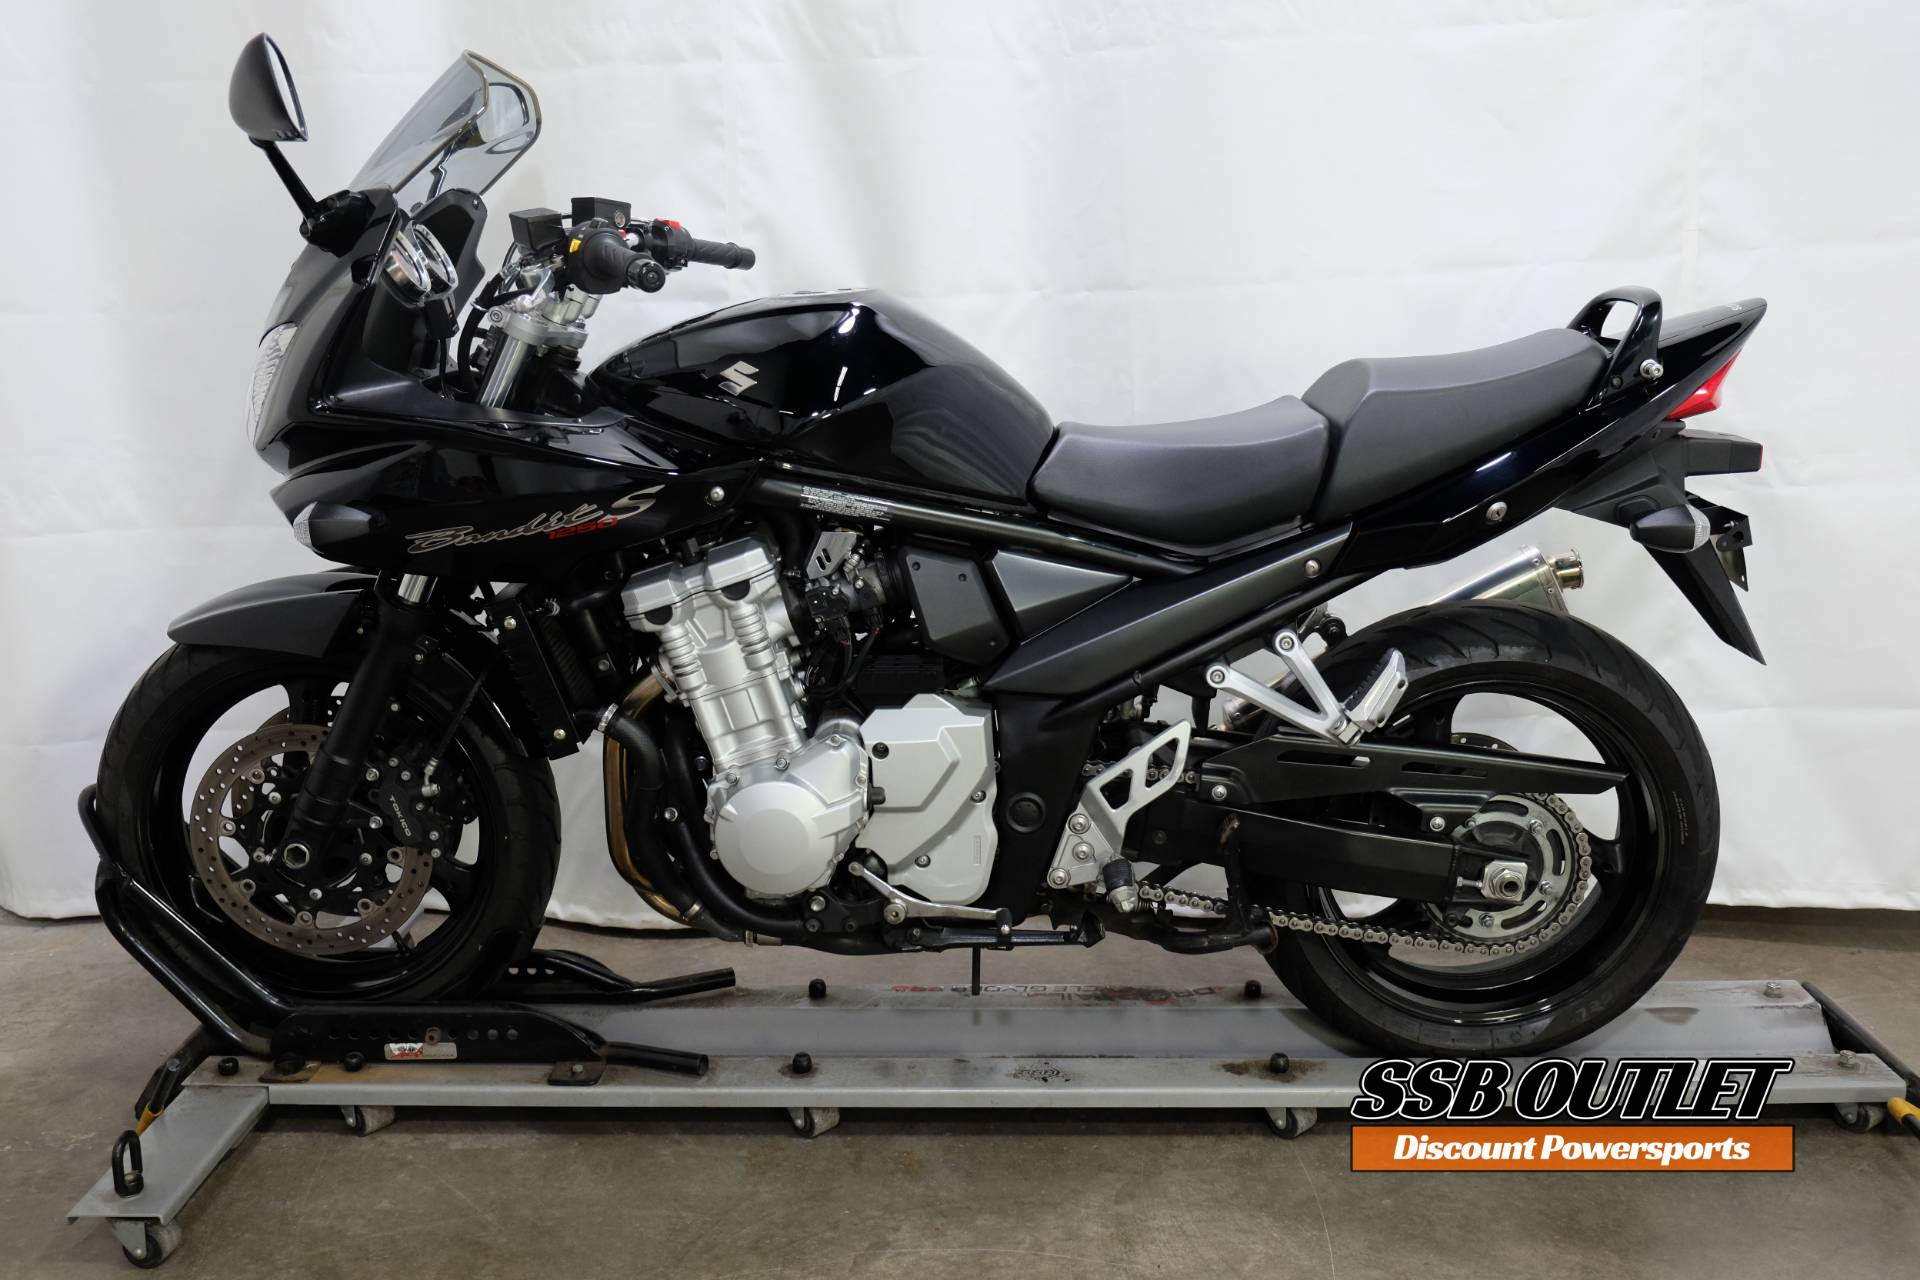 2007 Suzuki Bandit 1250 in Eden Prairie, Minnesota - Photo 4